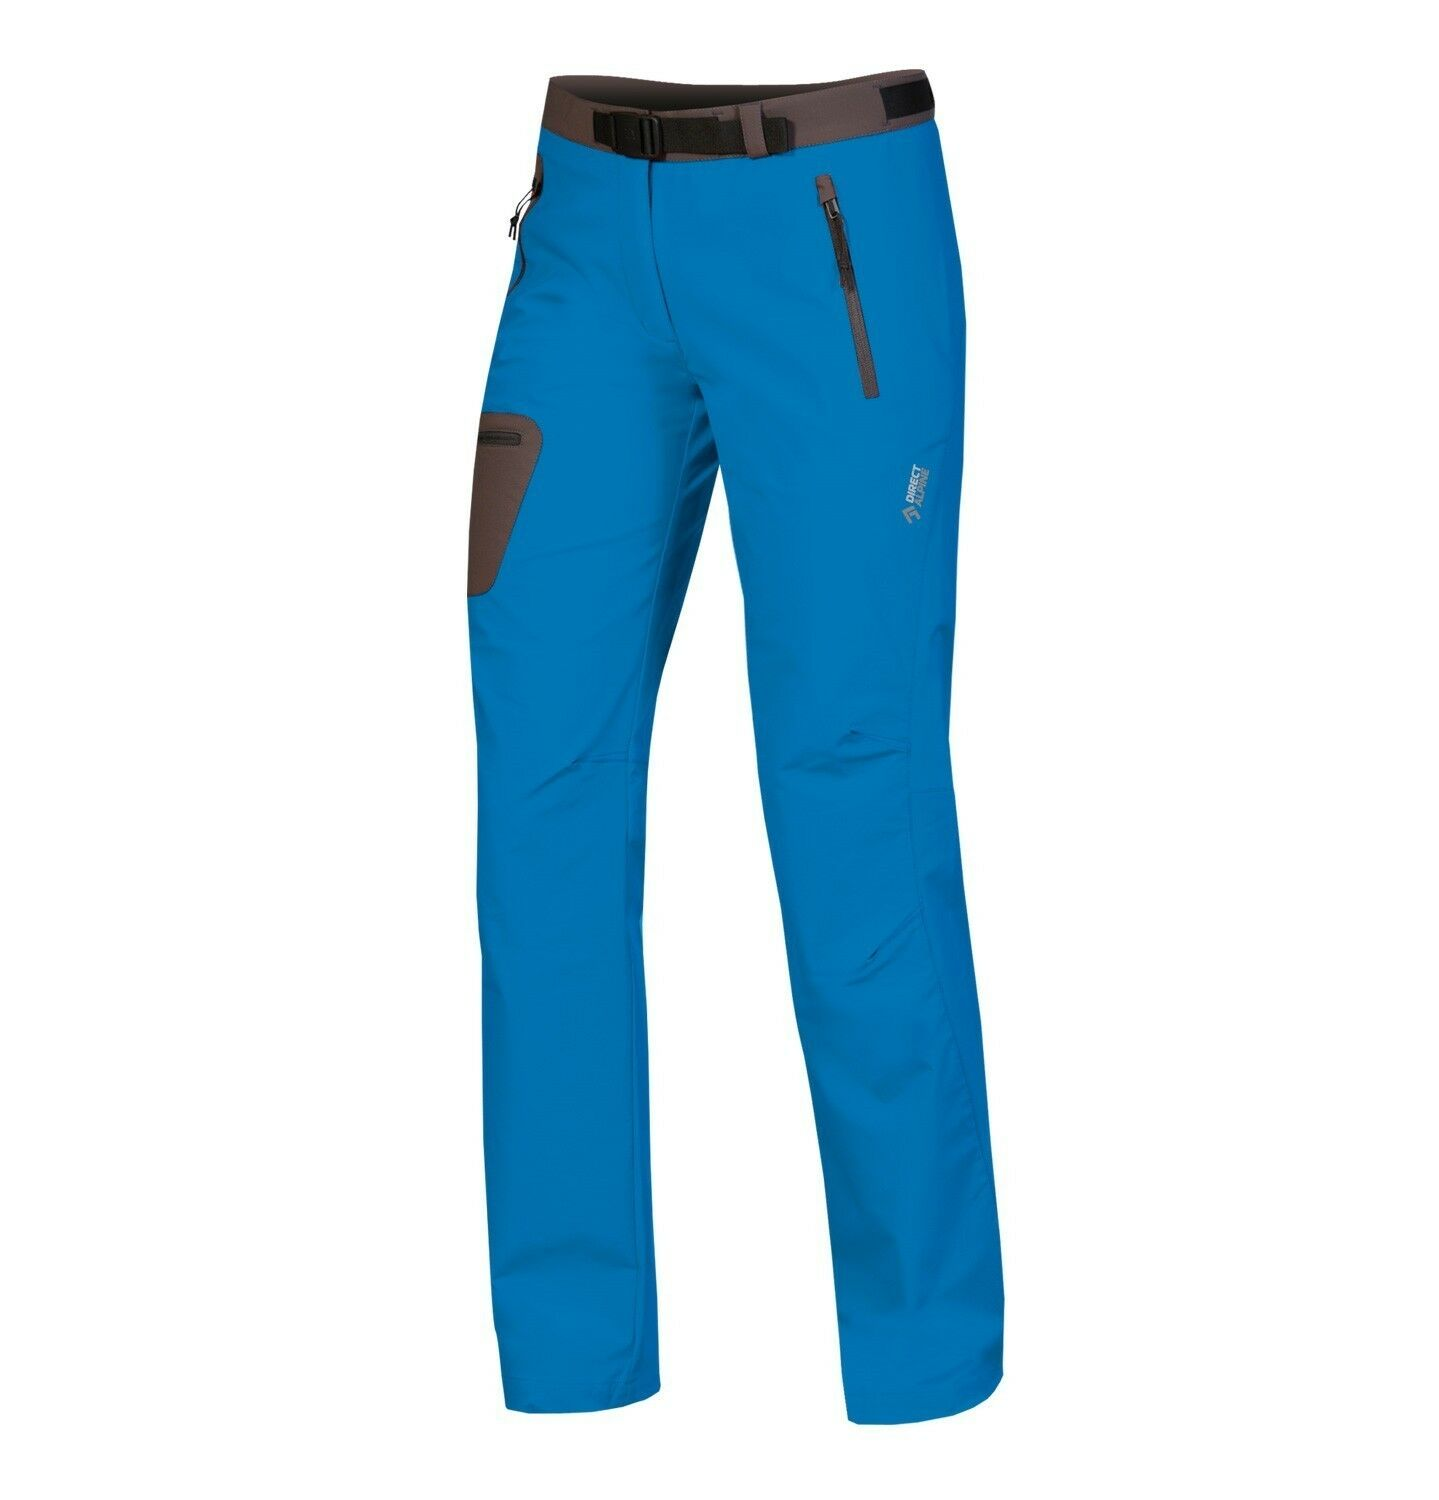 Direct Alpine Cruise Lady Pant, Outdoor-Hosen für Damen, Blau grau, S